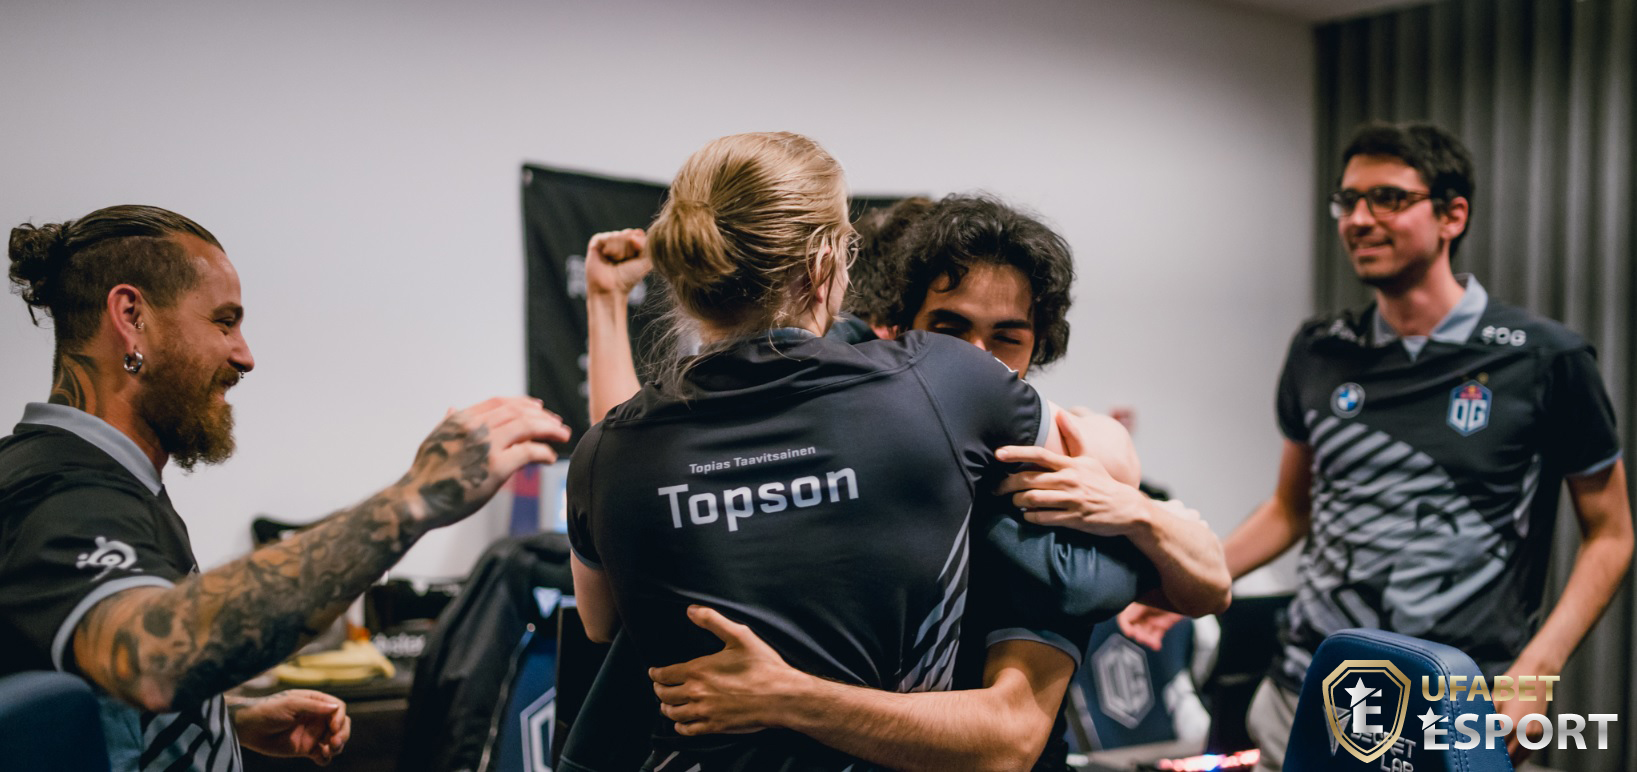 OG-will-defend-their-aegis-at-TI10-ufa